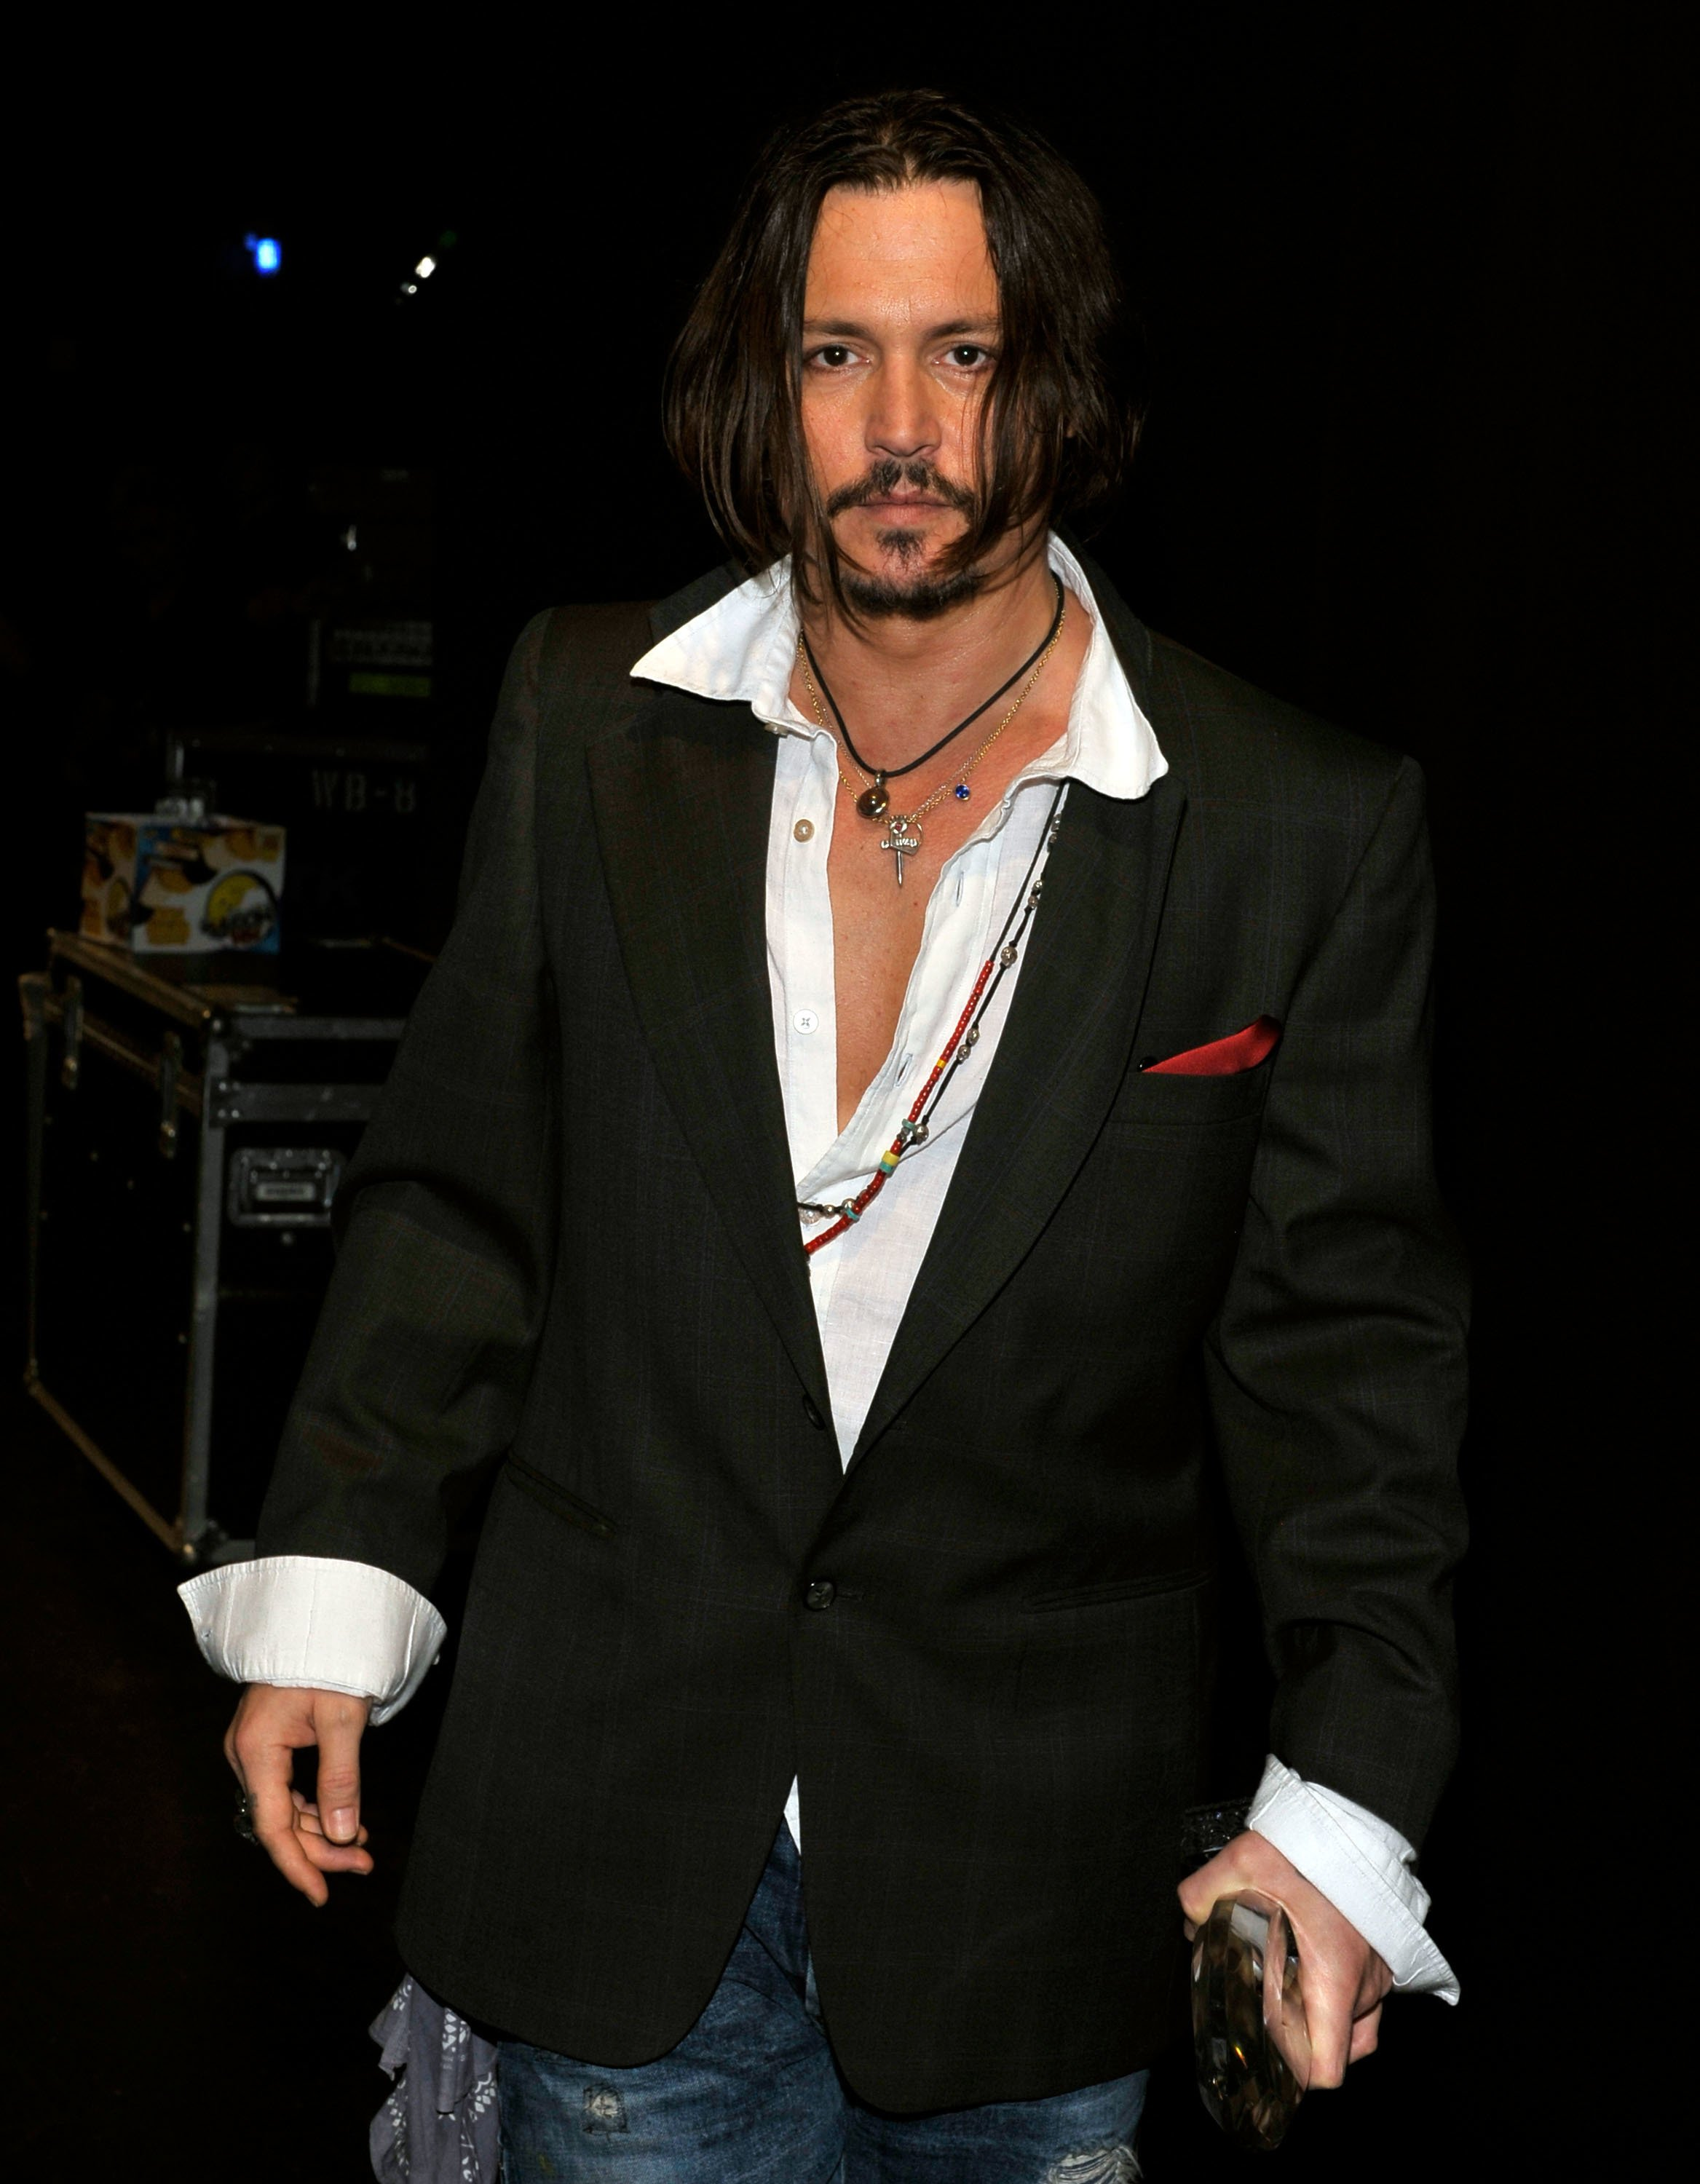 Johnny Depp poses backstage during the People's Choice Awards 2010. | Source: Getty Images